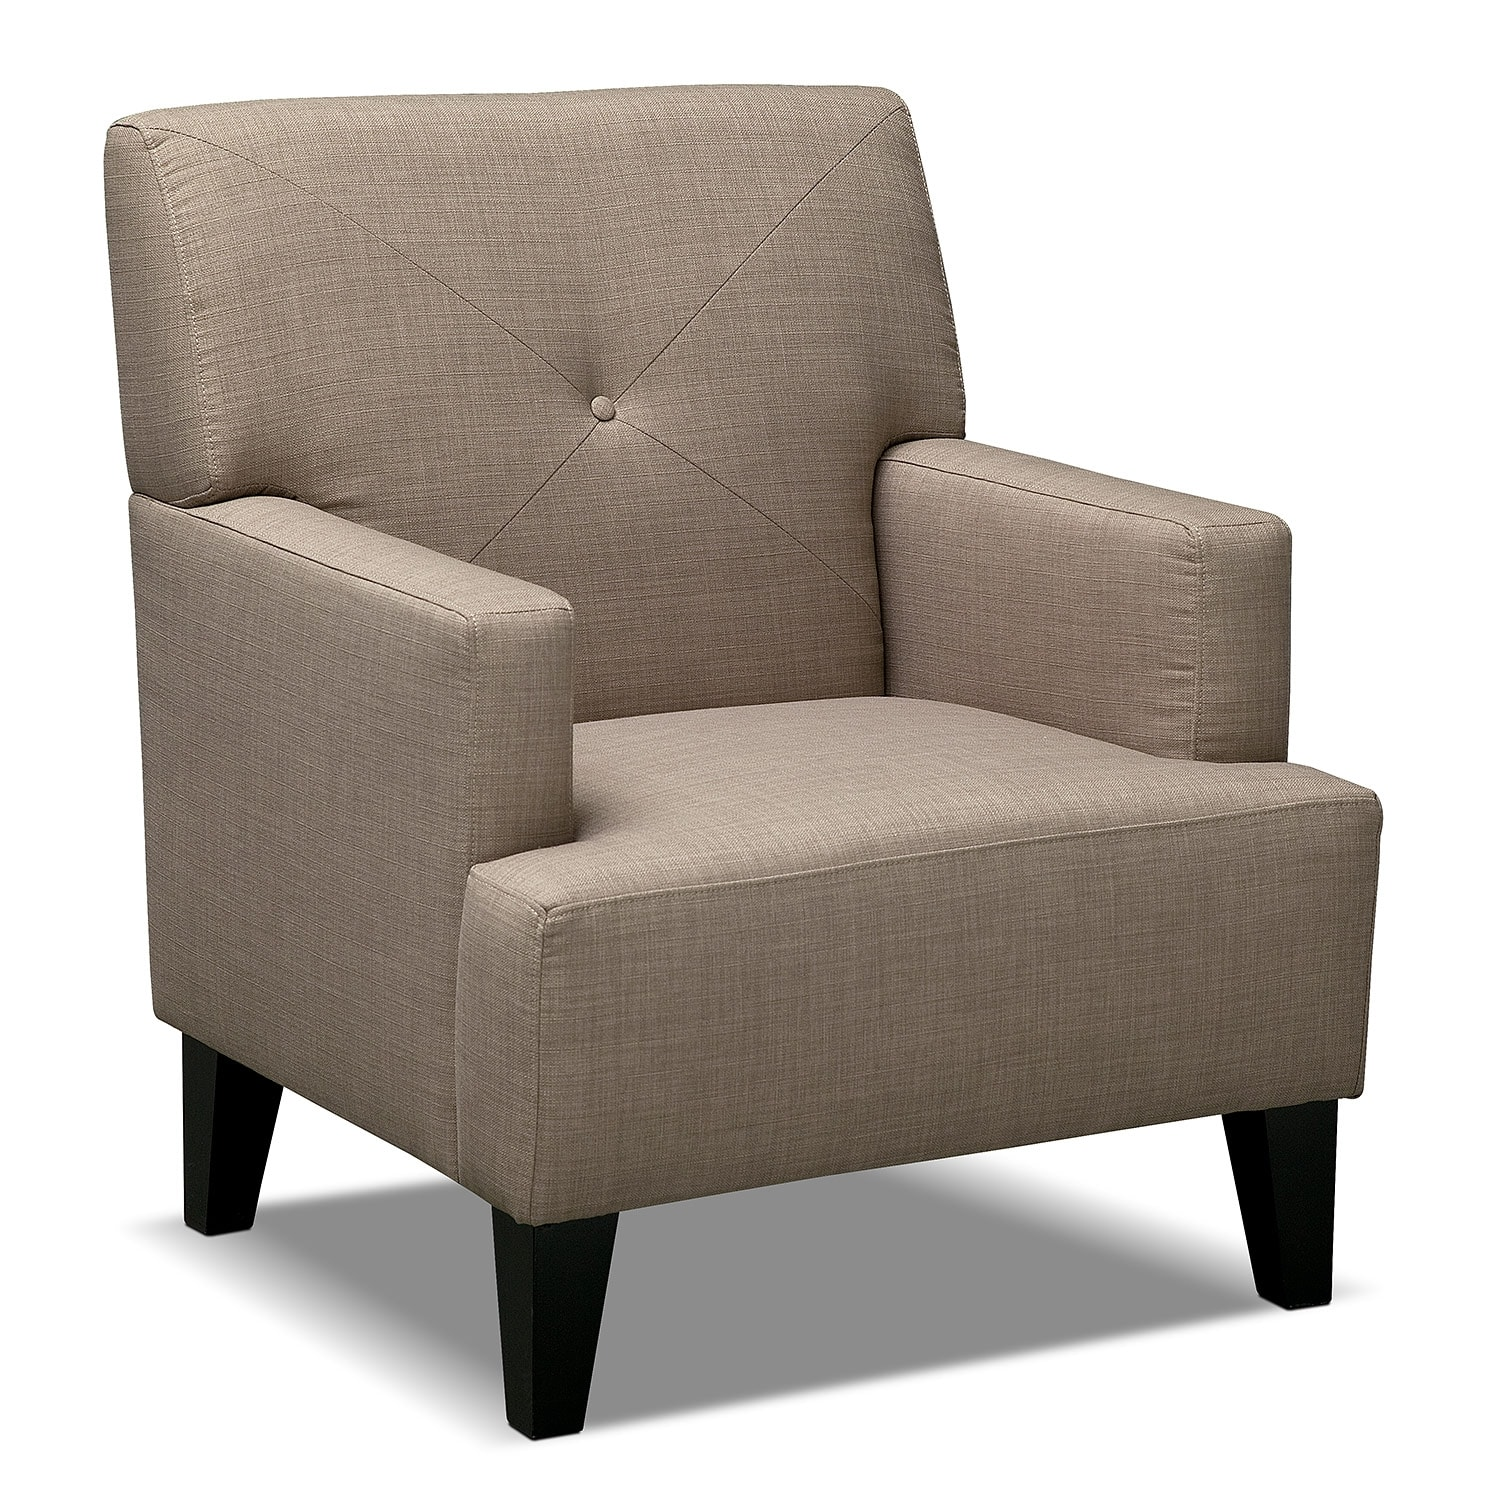 Avalon accent chair wheat value city furniture for Living room accent chairs